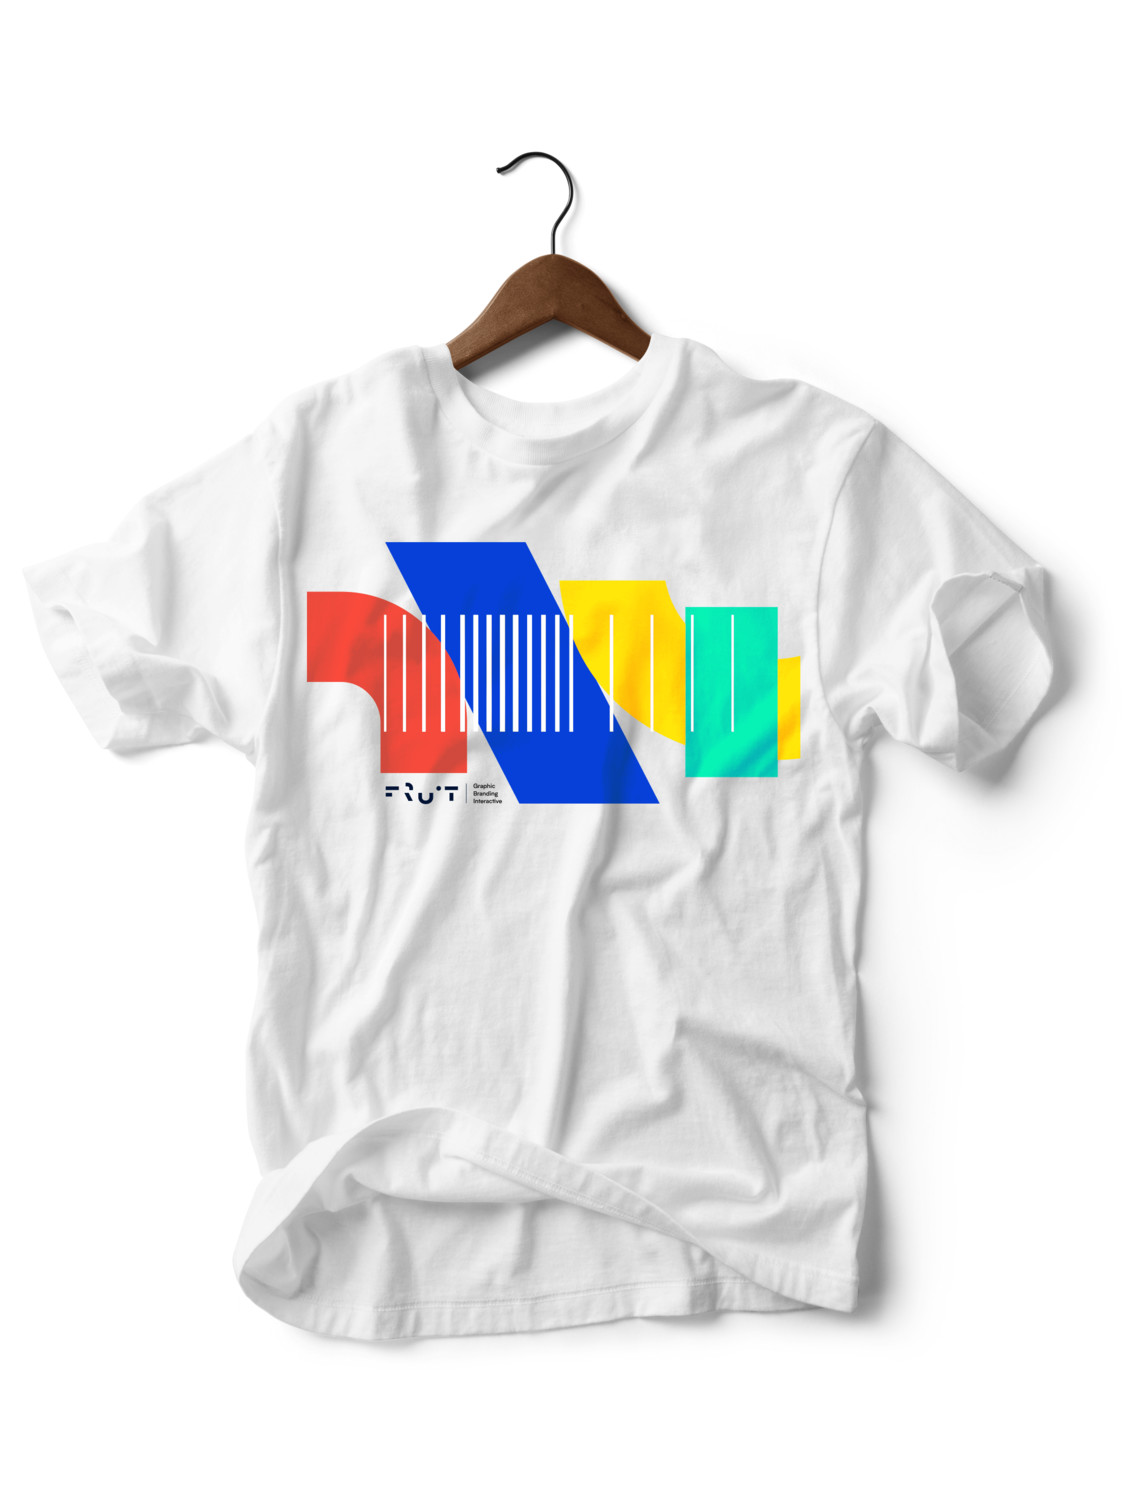 Geometric White Fruit Creative Branded T-shirt